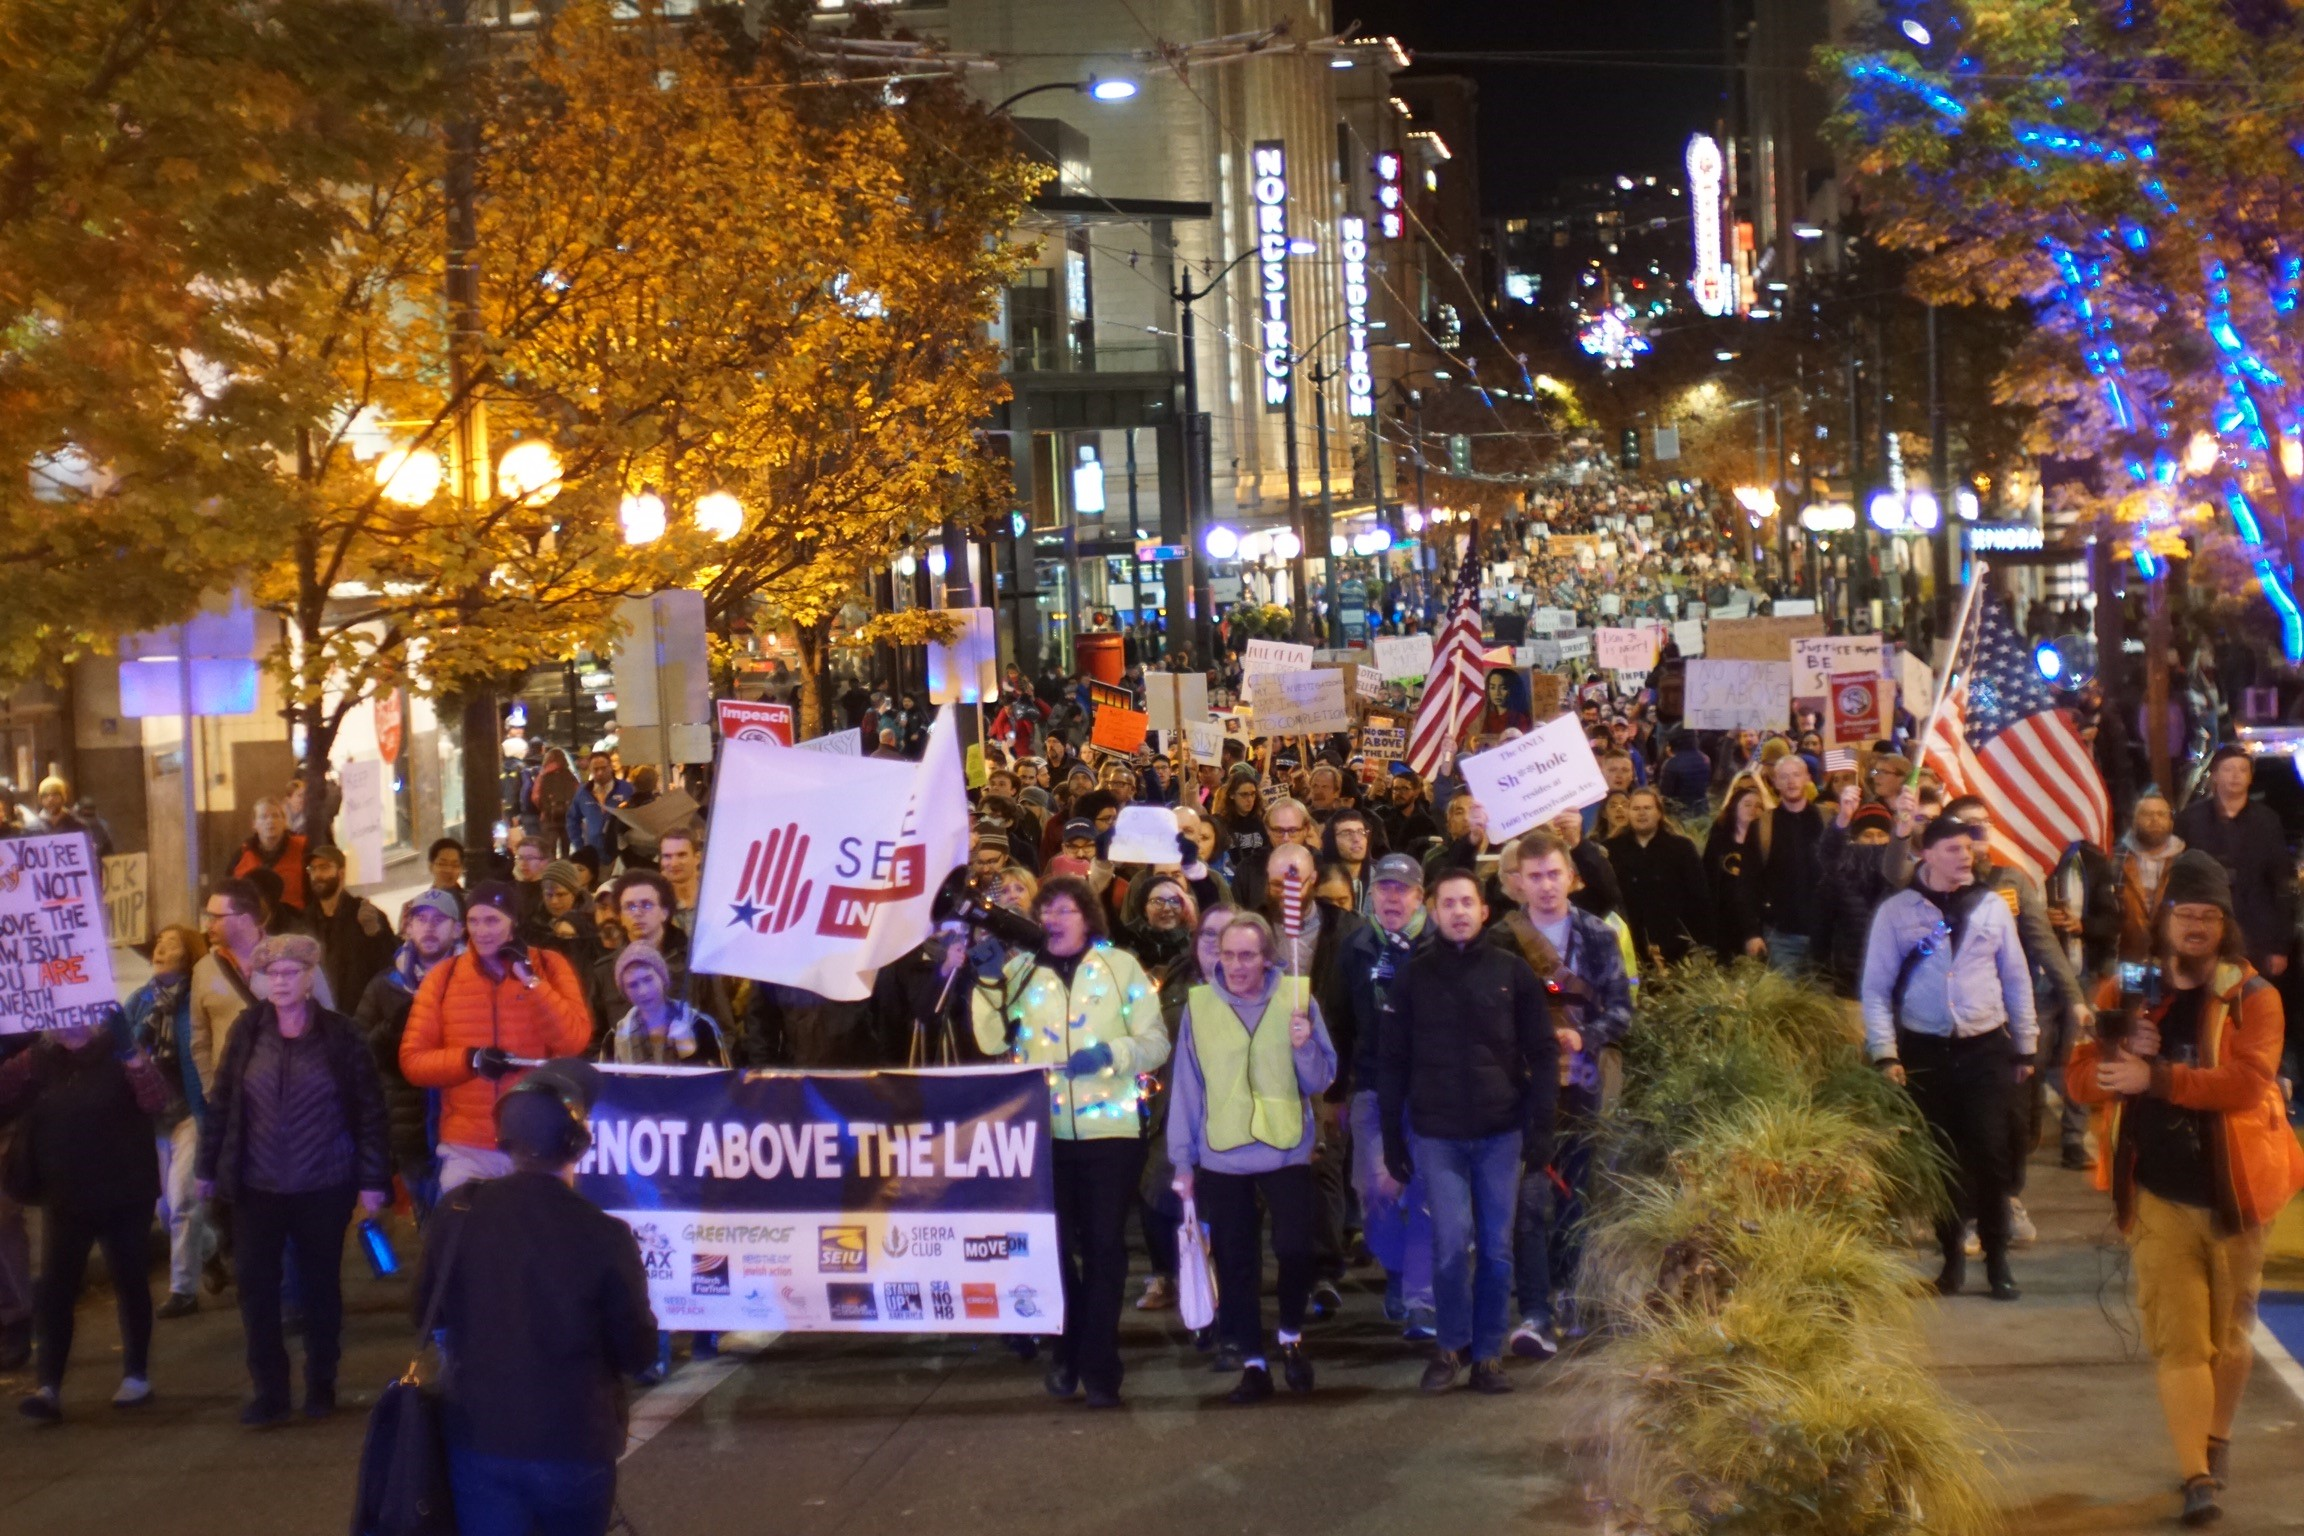 Protest march underway at height of Seattle evening rush hour